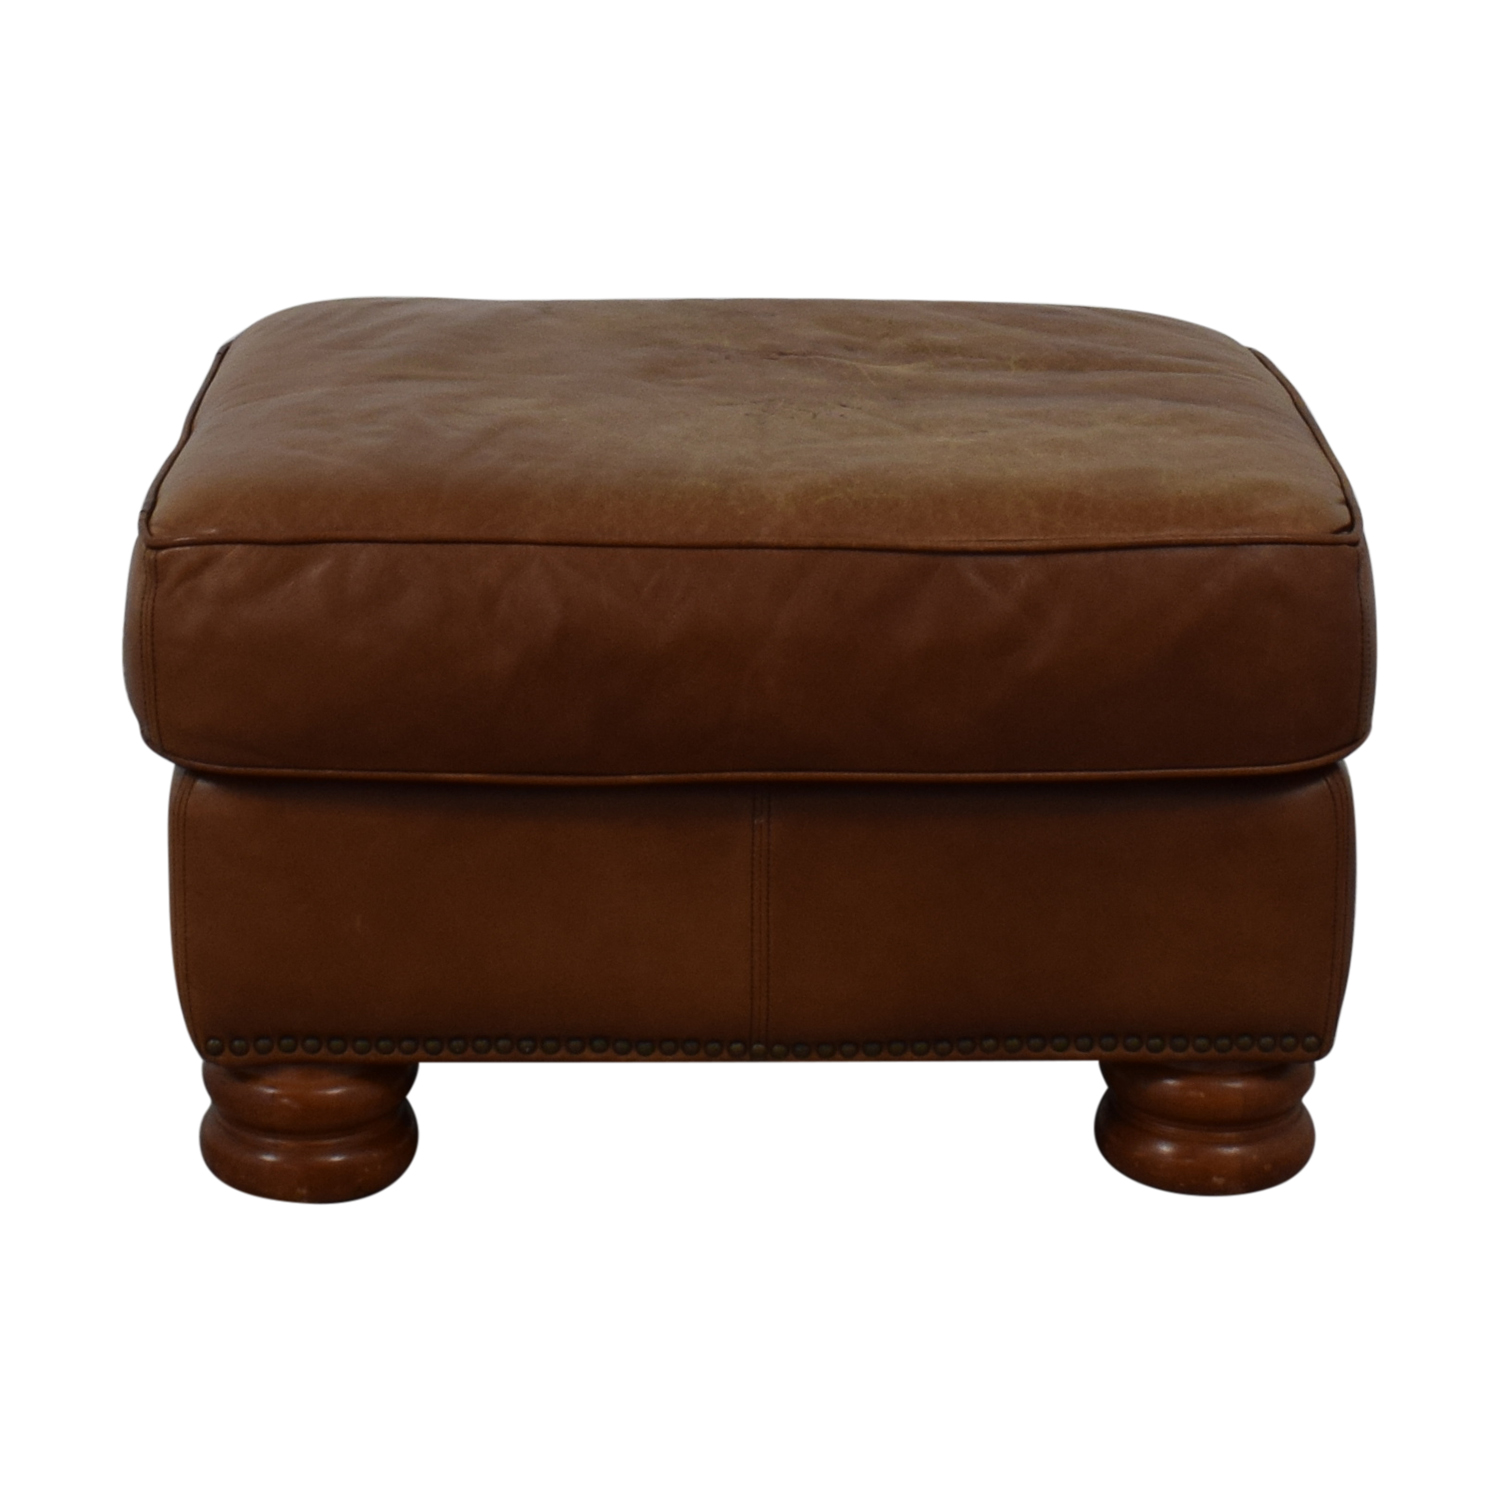 Thomasville Brown Leather Ottoman / Chairs